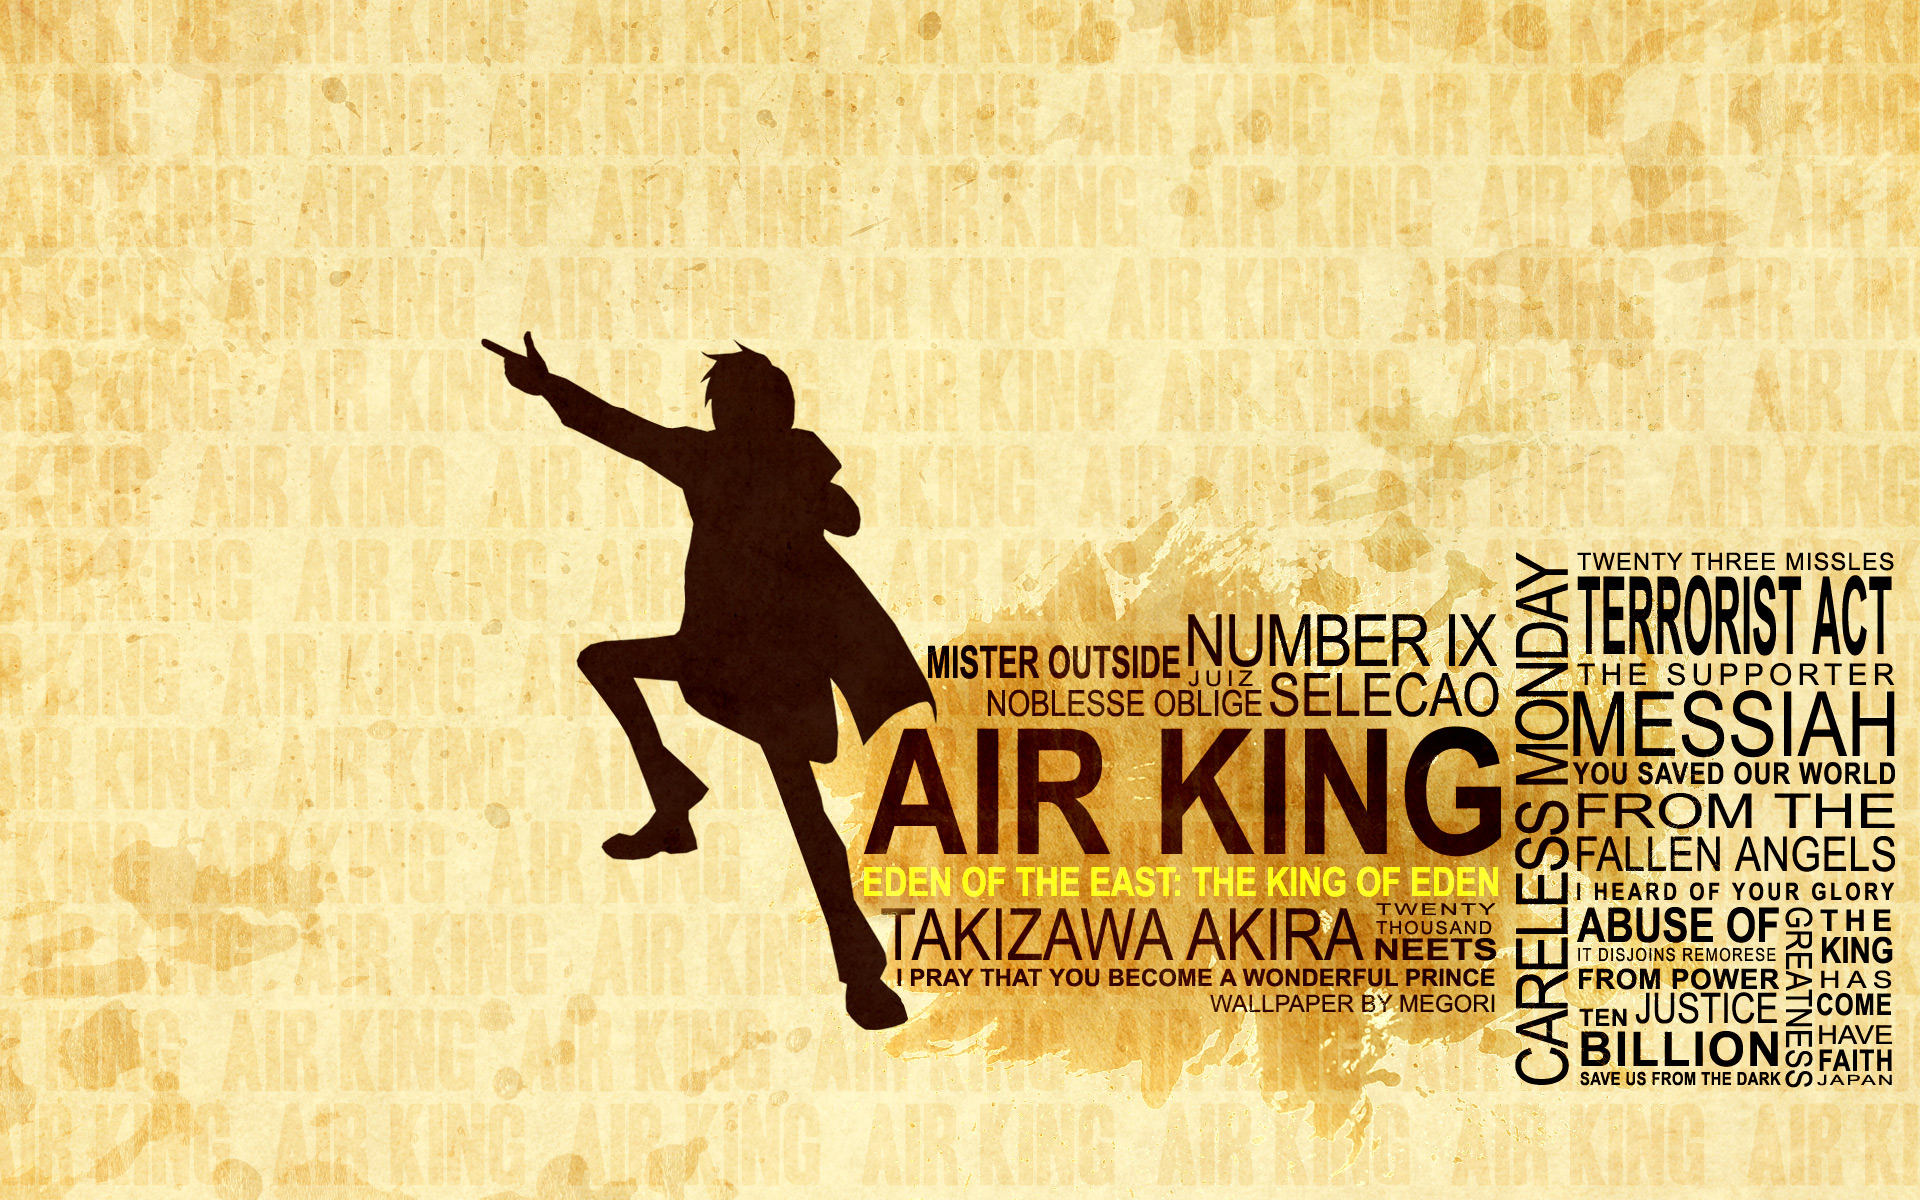 Air King imagen digital - 1920x1200